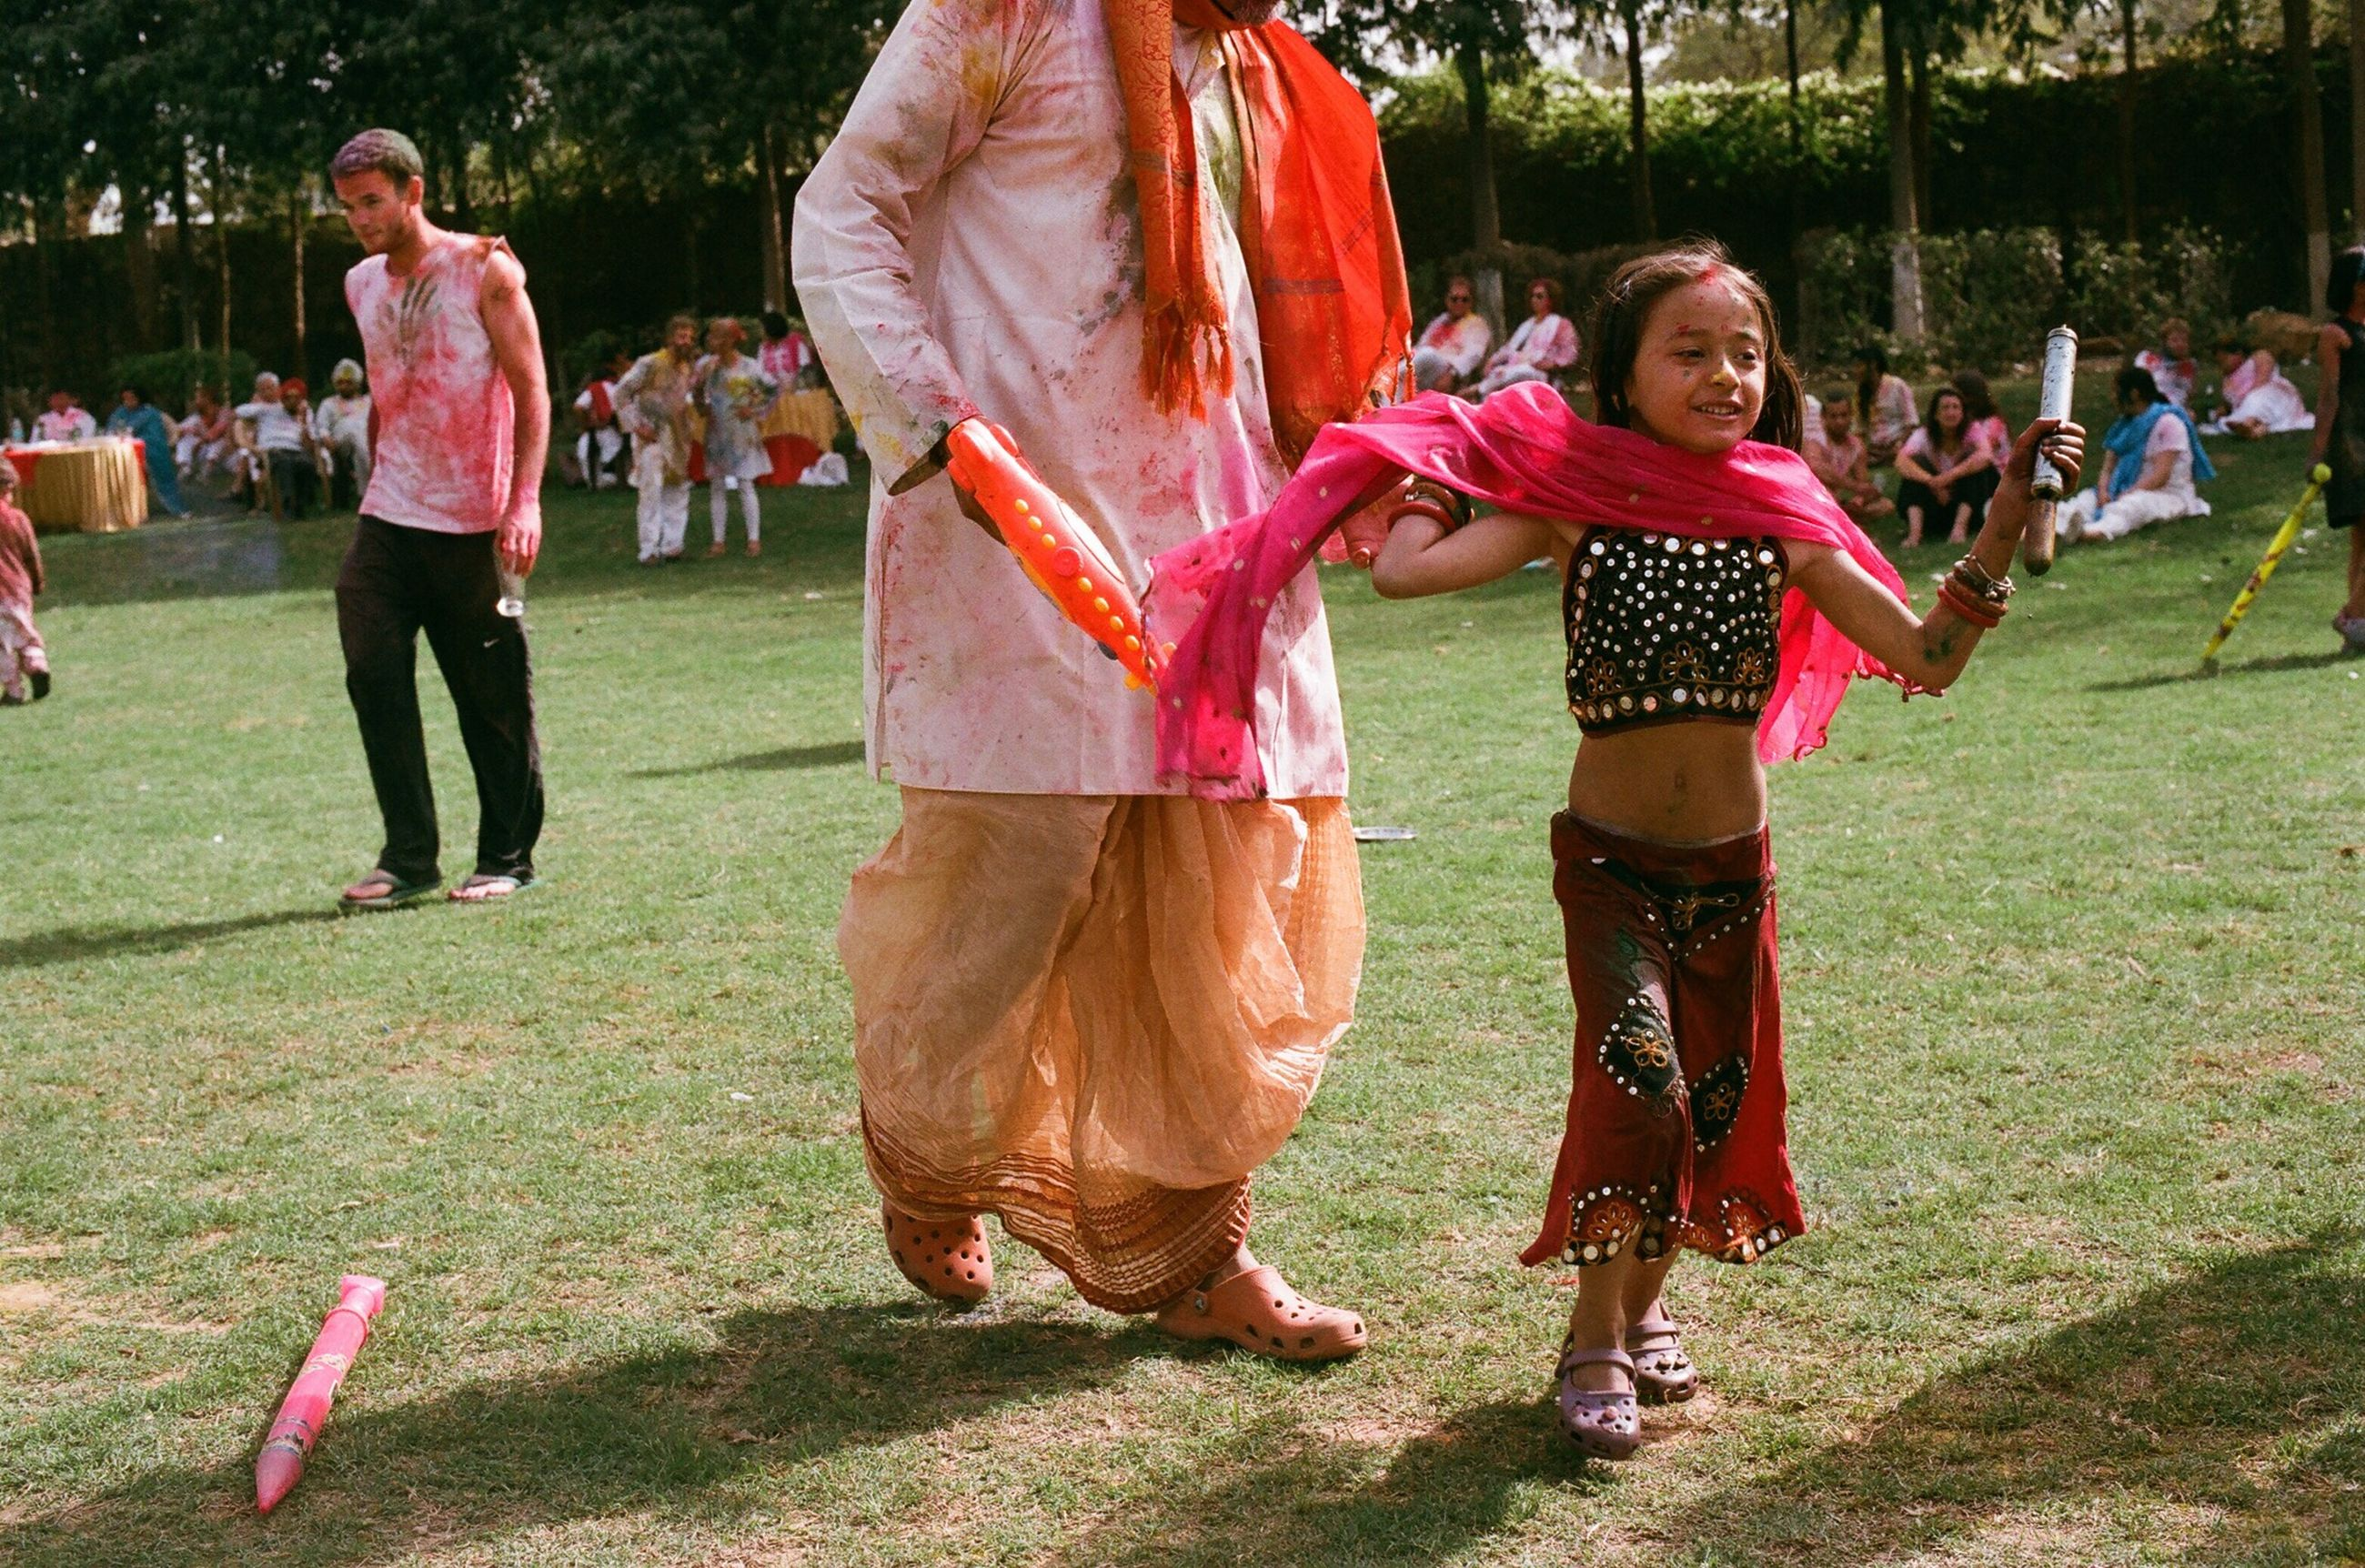 lifestyles, leisure activity, grass, casual clothing, childhood, park - man made space, full length, girls, togetherness, fun, men, person, enjoyment, playing, park, field, boys